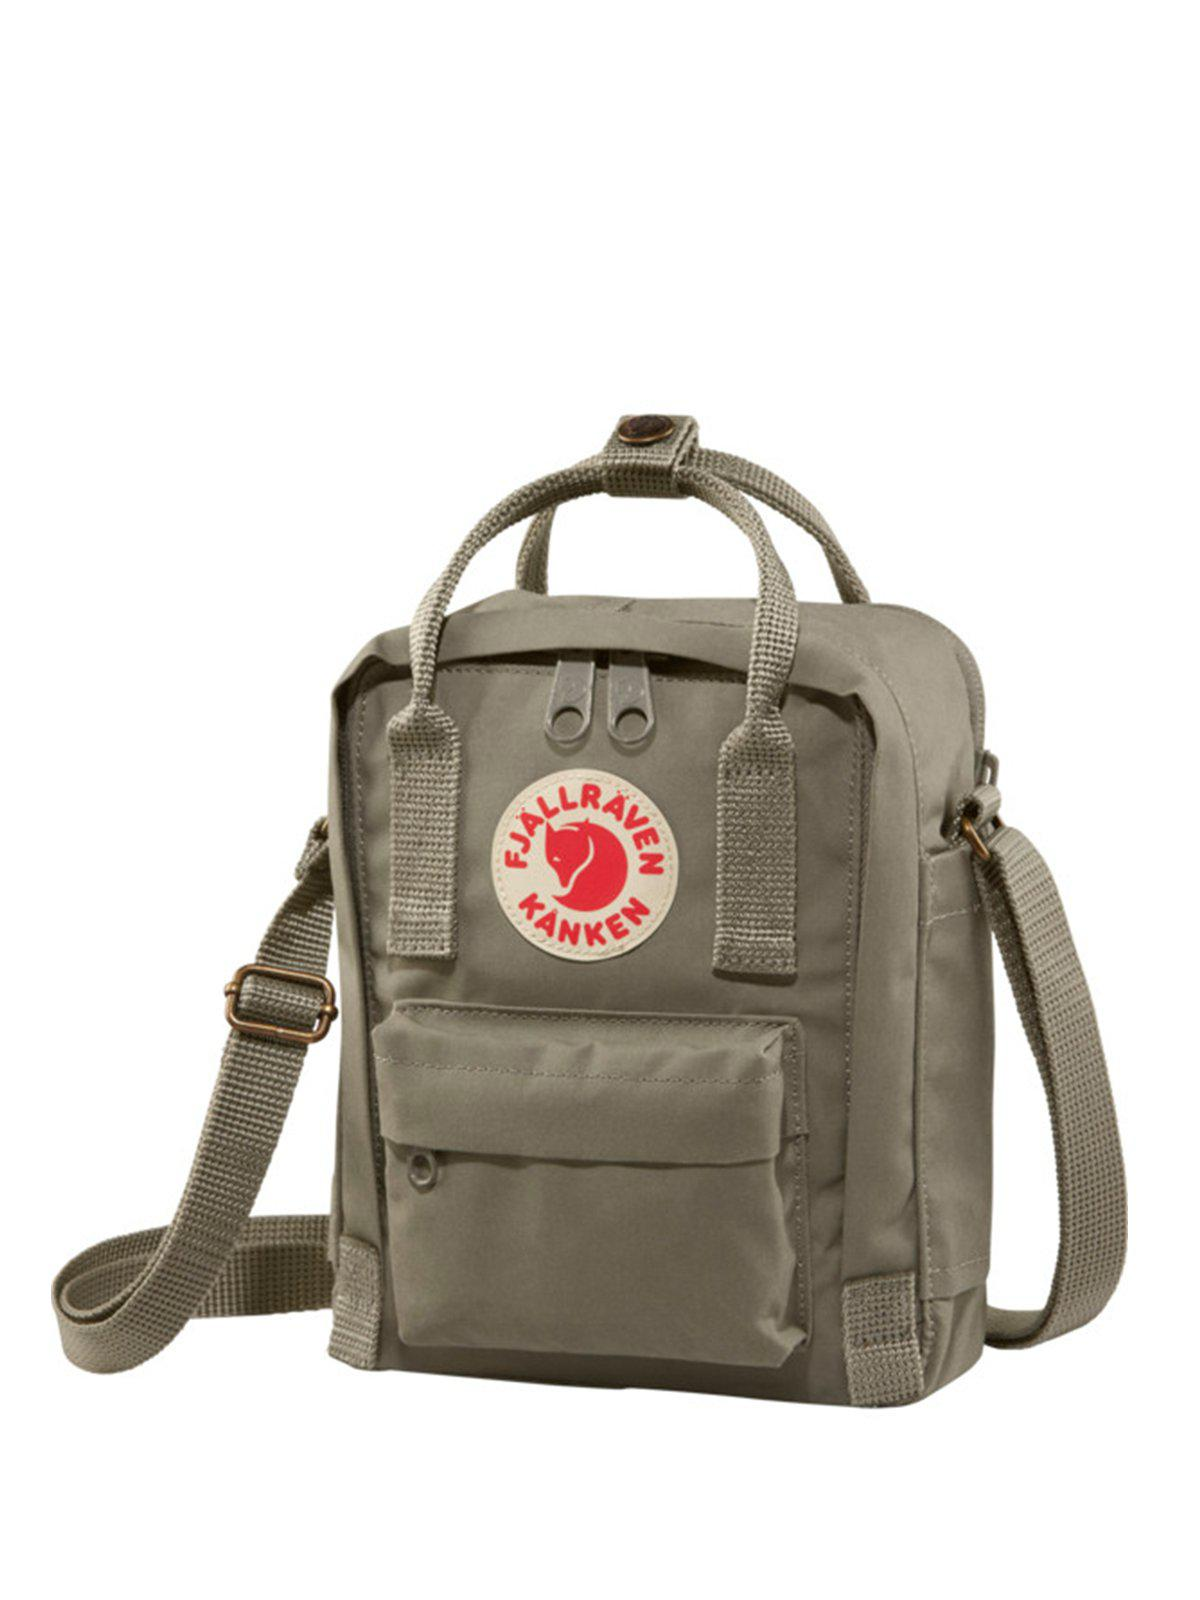 Fjallraven Kanken Sling Bag Fog - MORE by Morello Indonesia